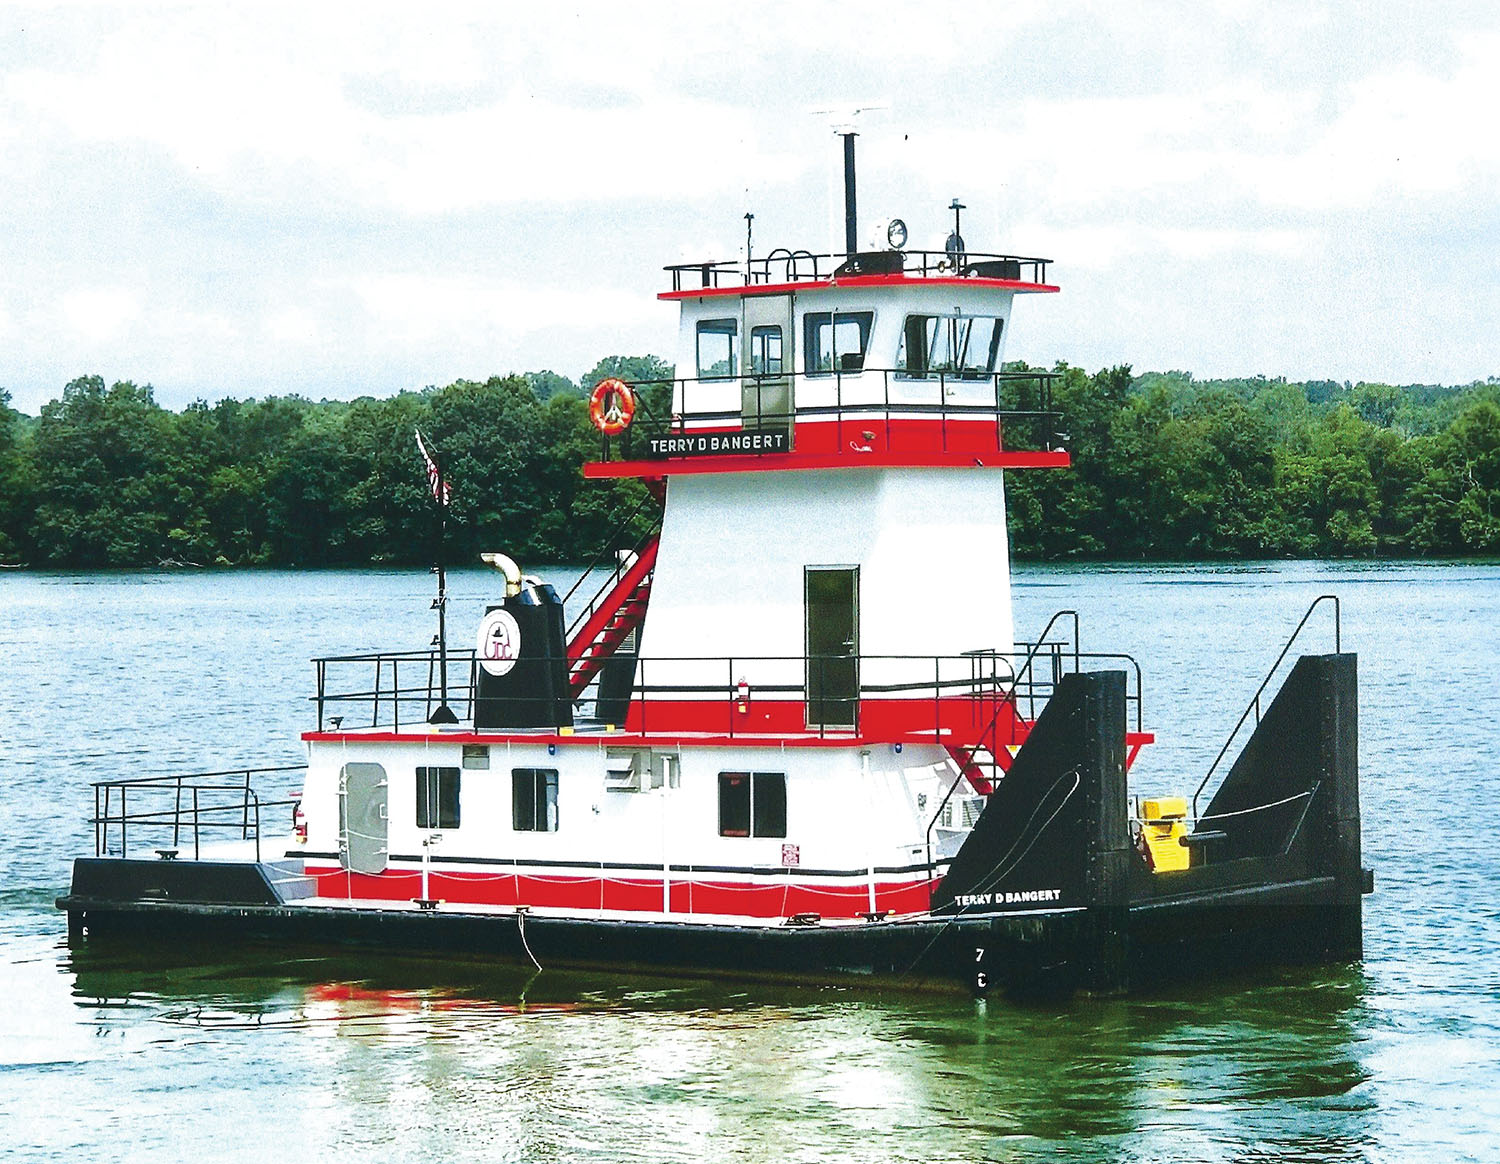 The 1,500 hp. mv. Terry D. Bangert is the seventh towboat in the fleet of Gateway Dredging & Contracting LLC. (Photo courtesy of Serodino Inc.)